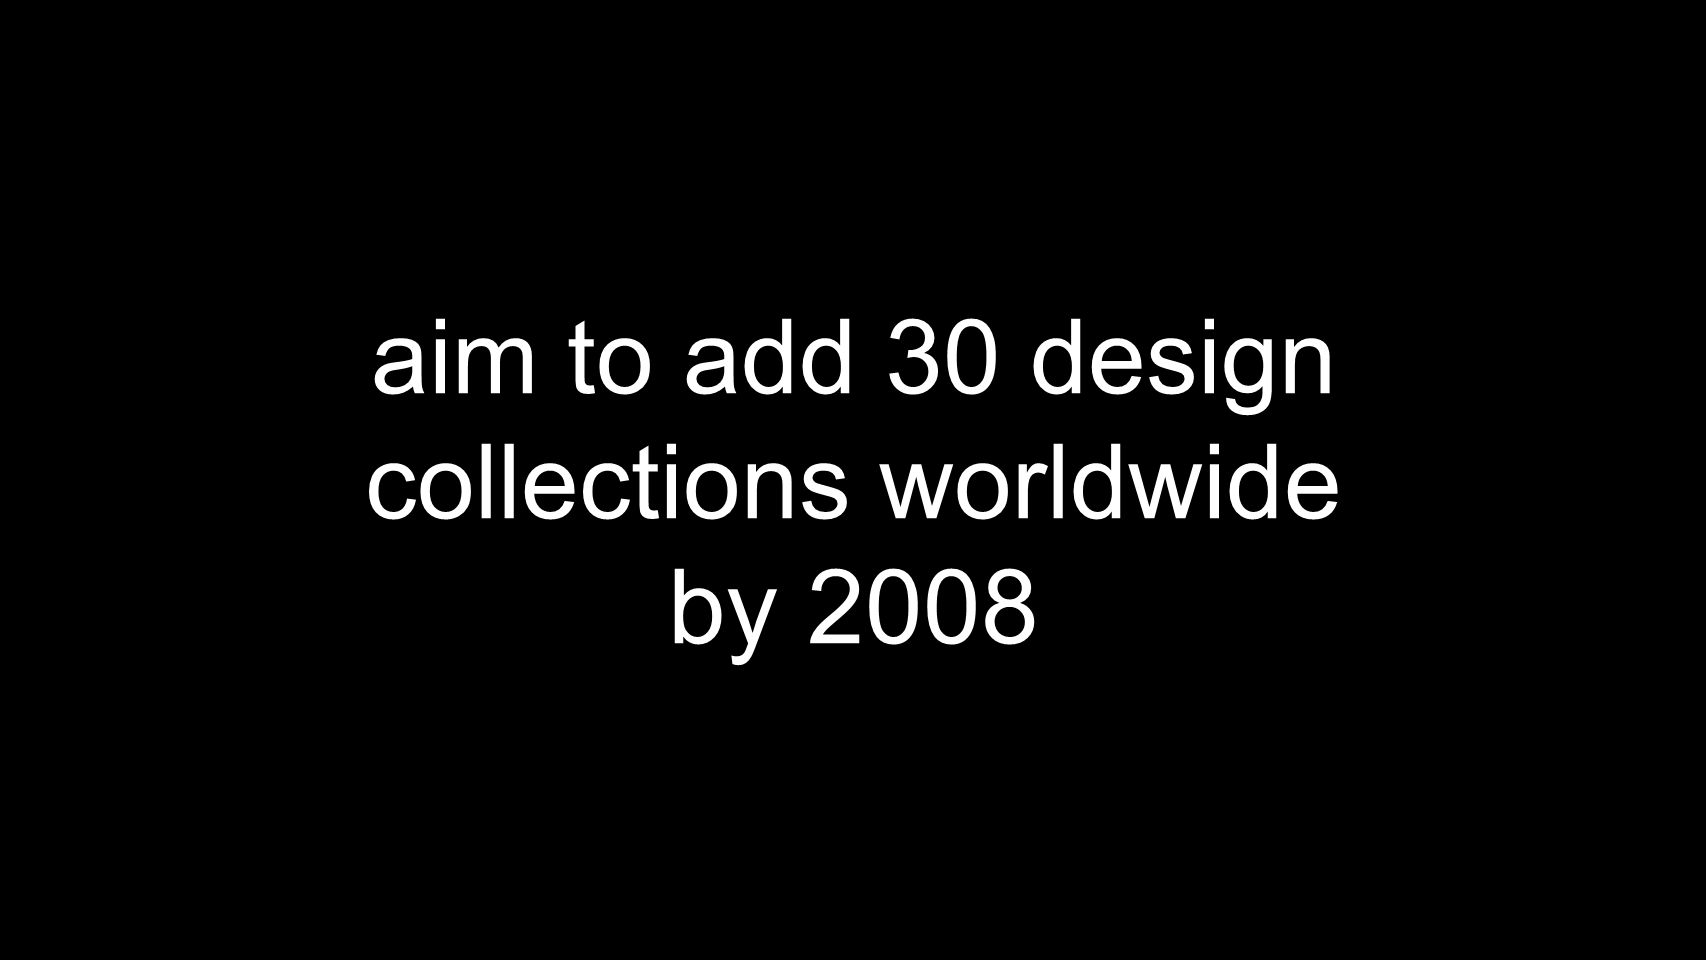 aim to add 30 design collections worldwide by 2008